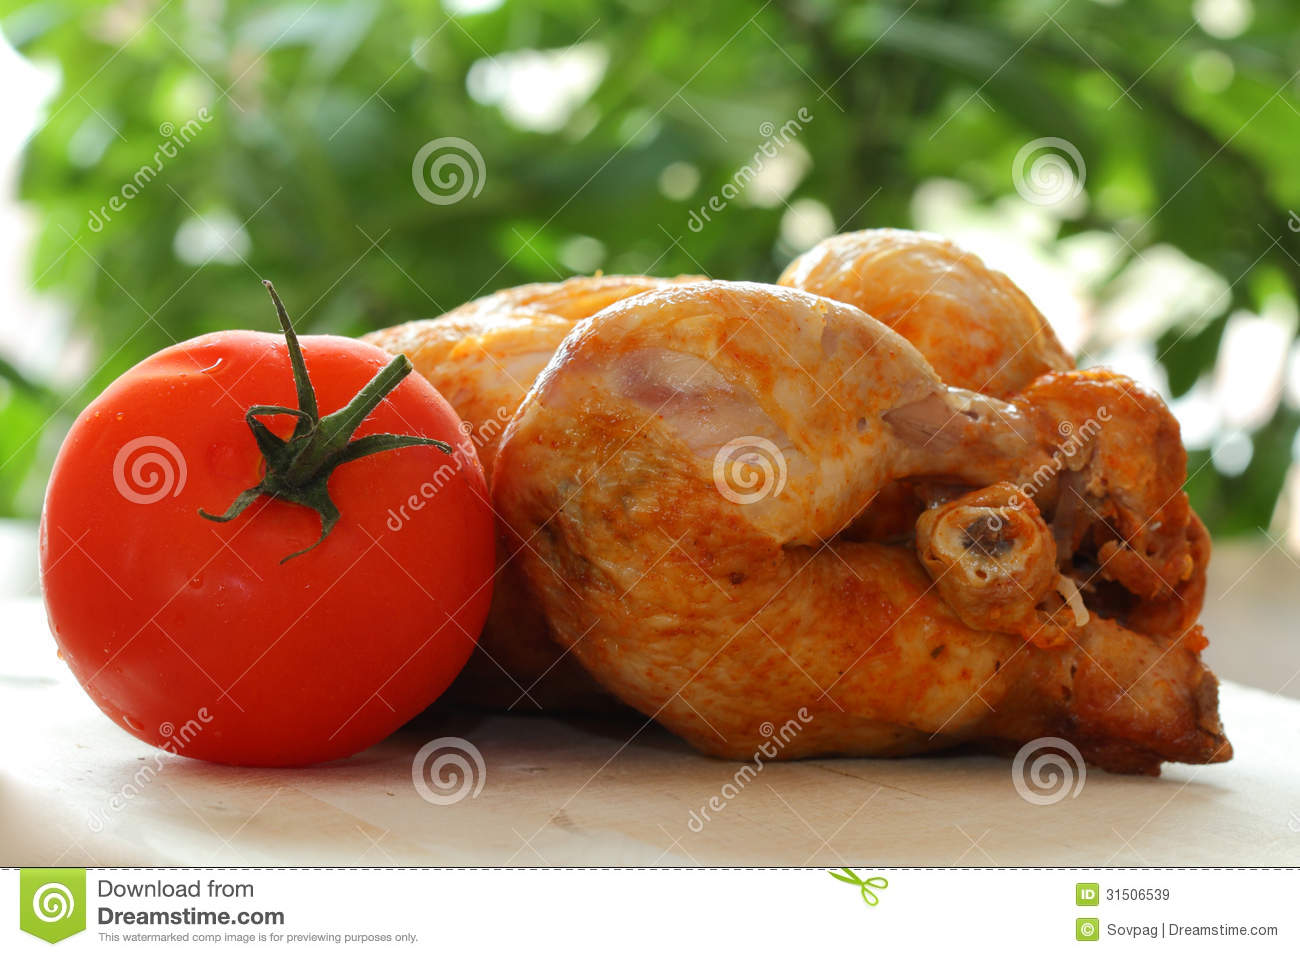 Roast Chicken Royalty Free Stock Images - Image: 31506539